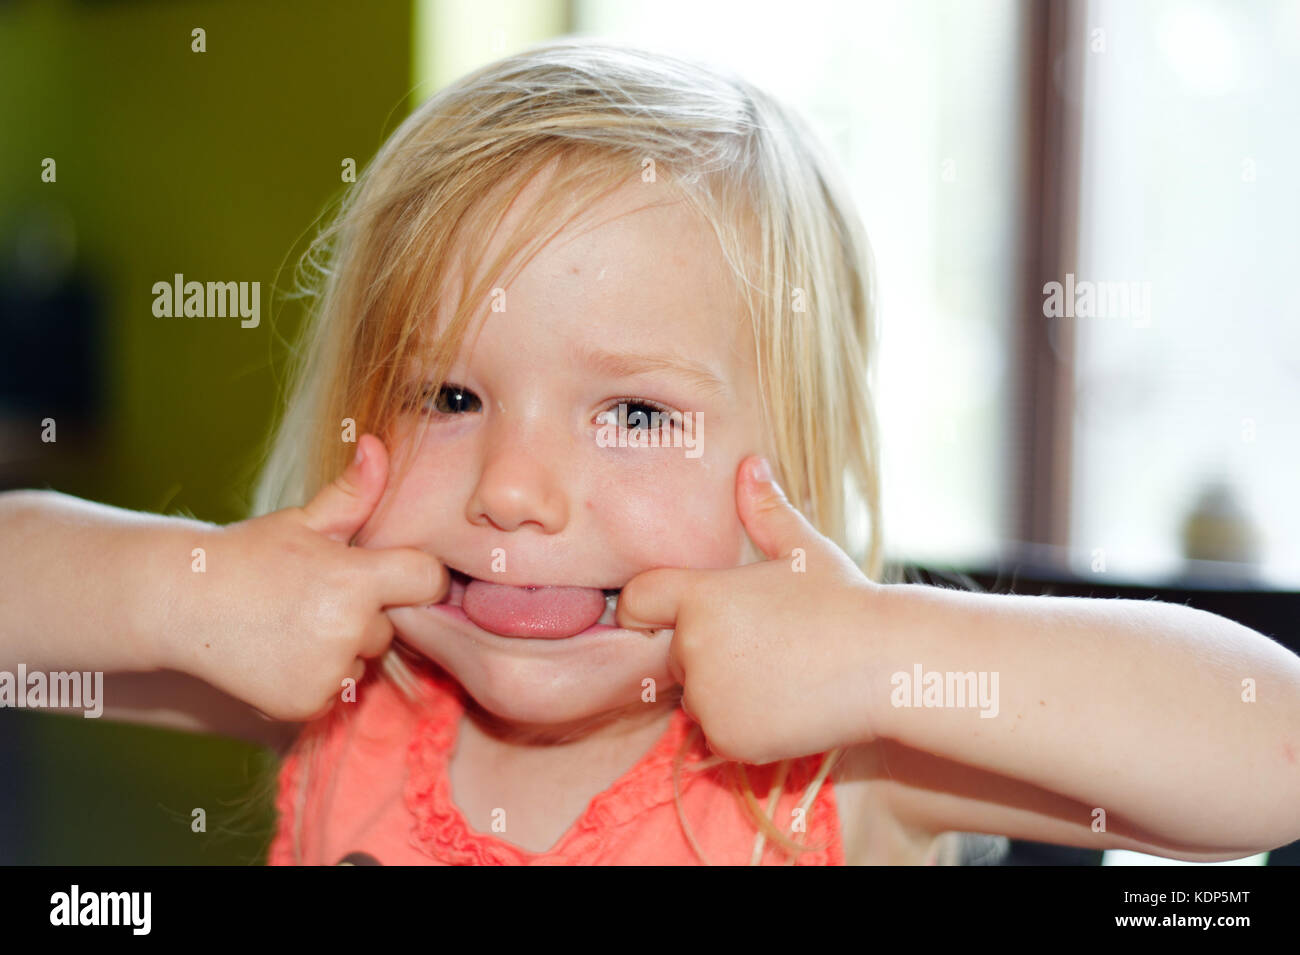 A three year old girl pulling faces - Stock Image